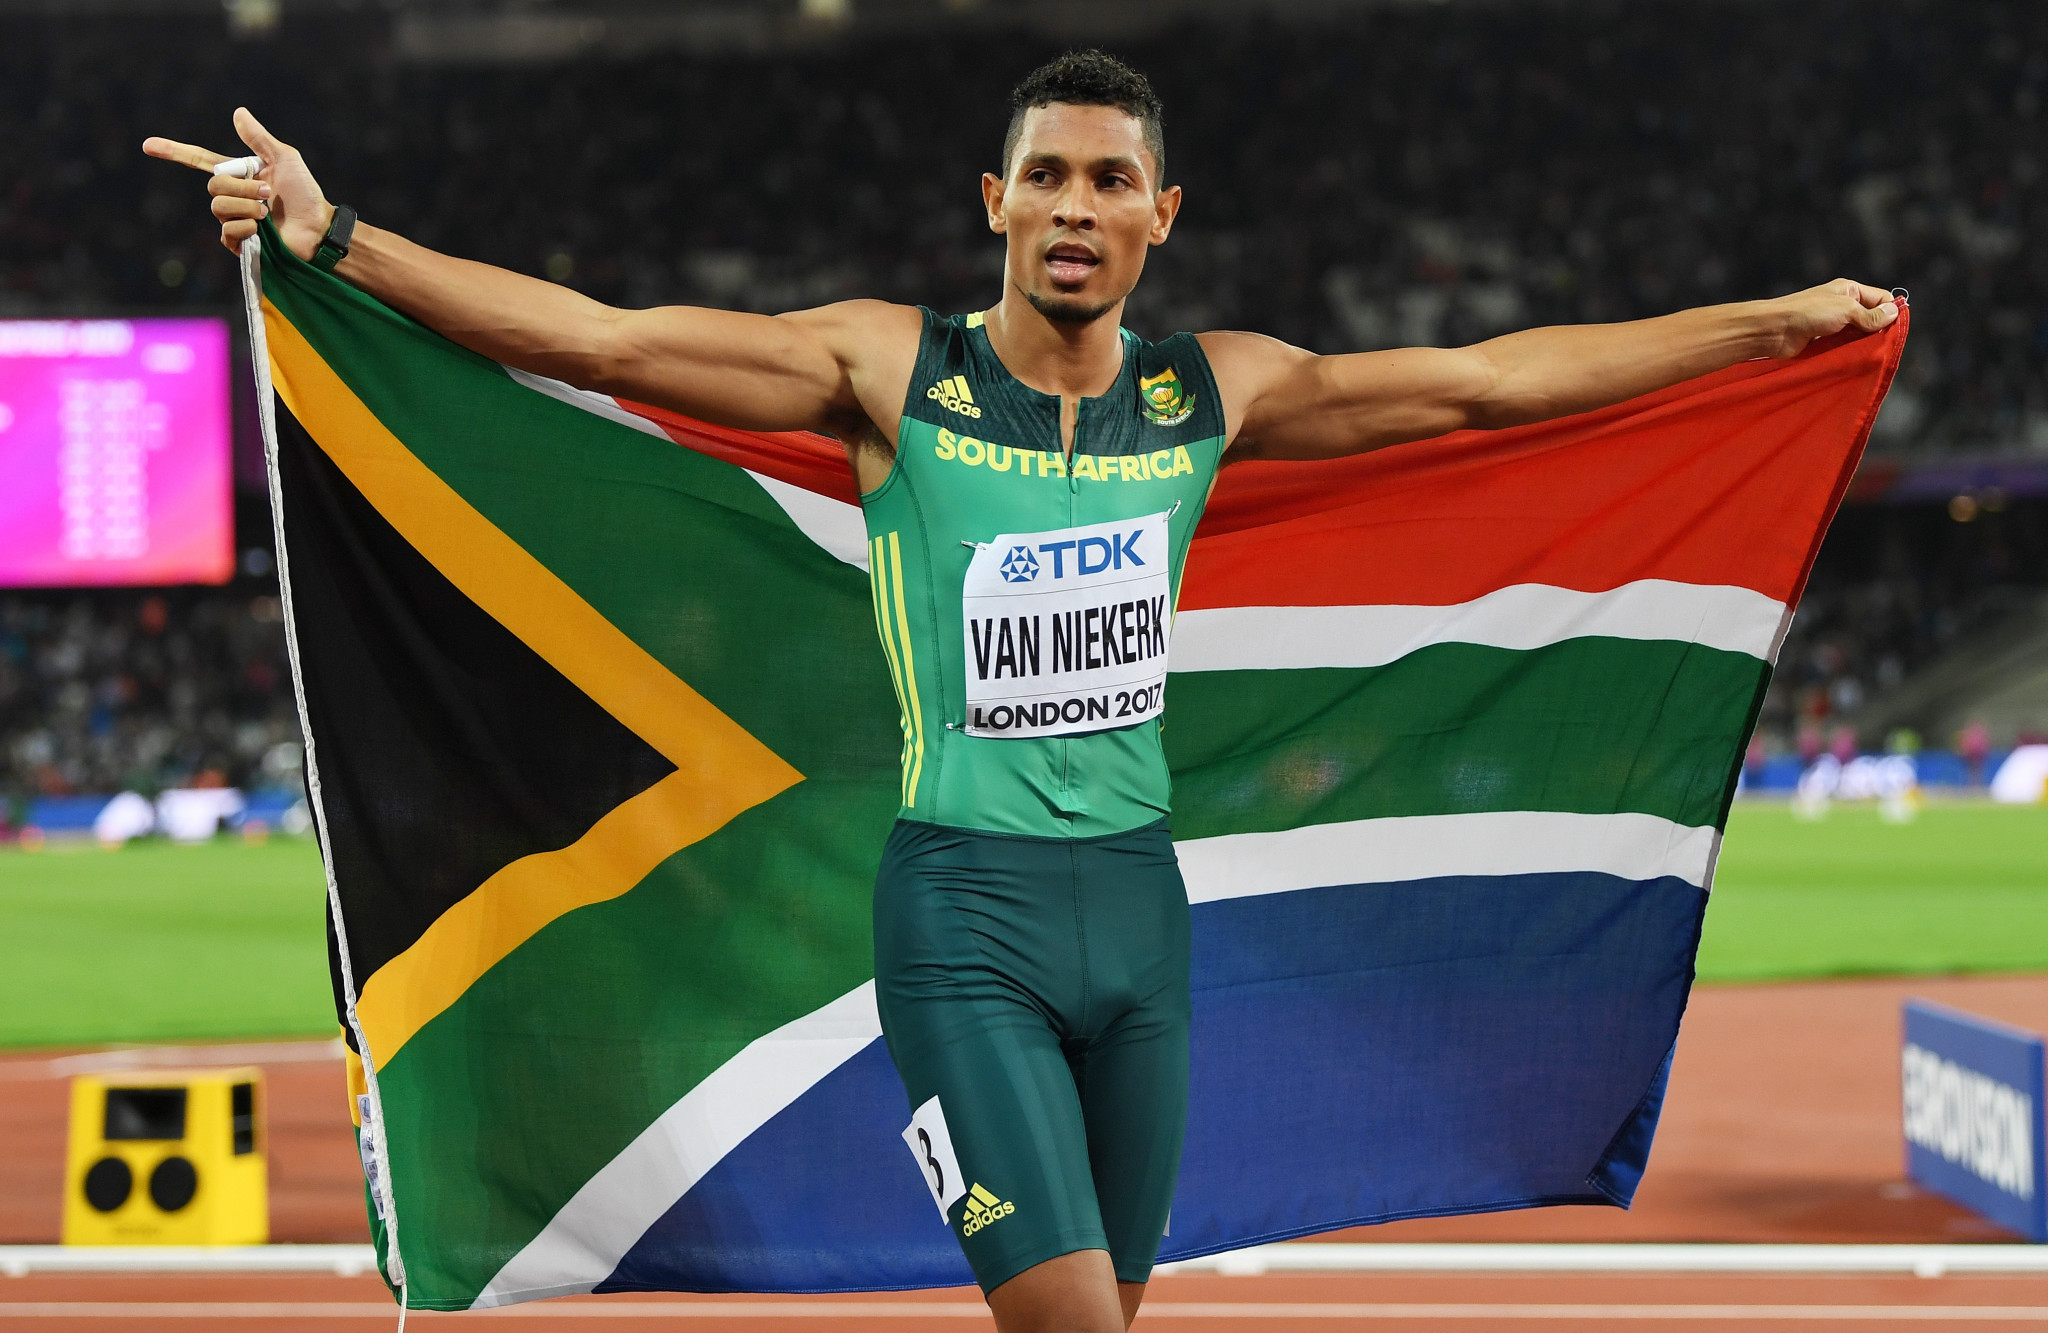 Olympic 400m champion Van Niekerk tests positive for COVID-19